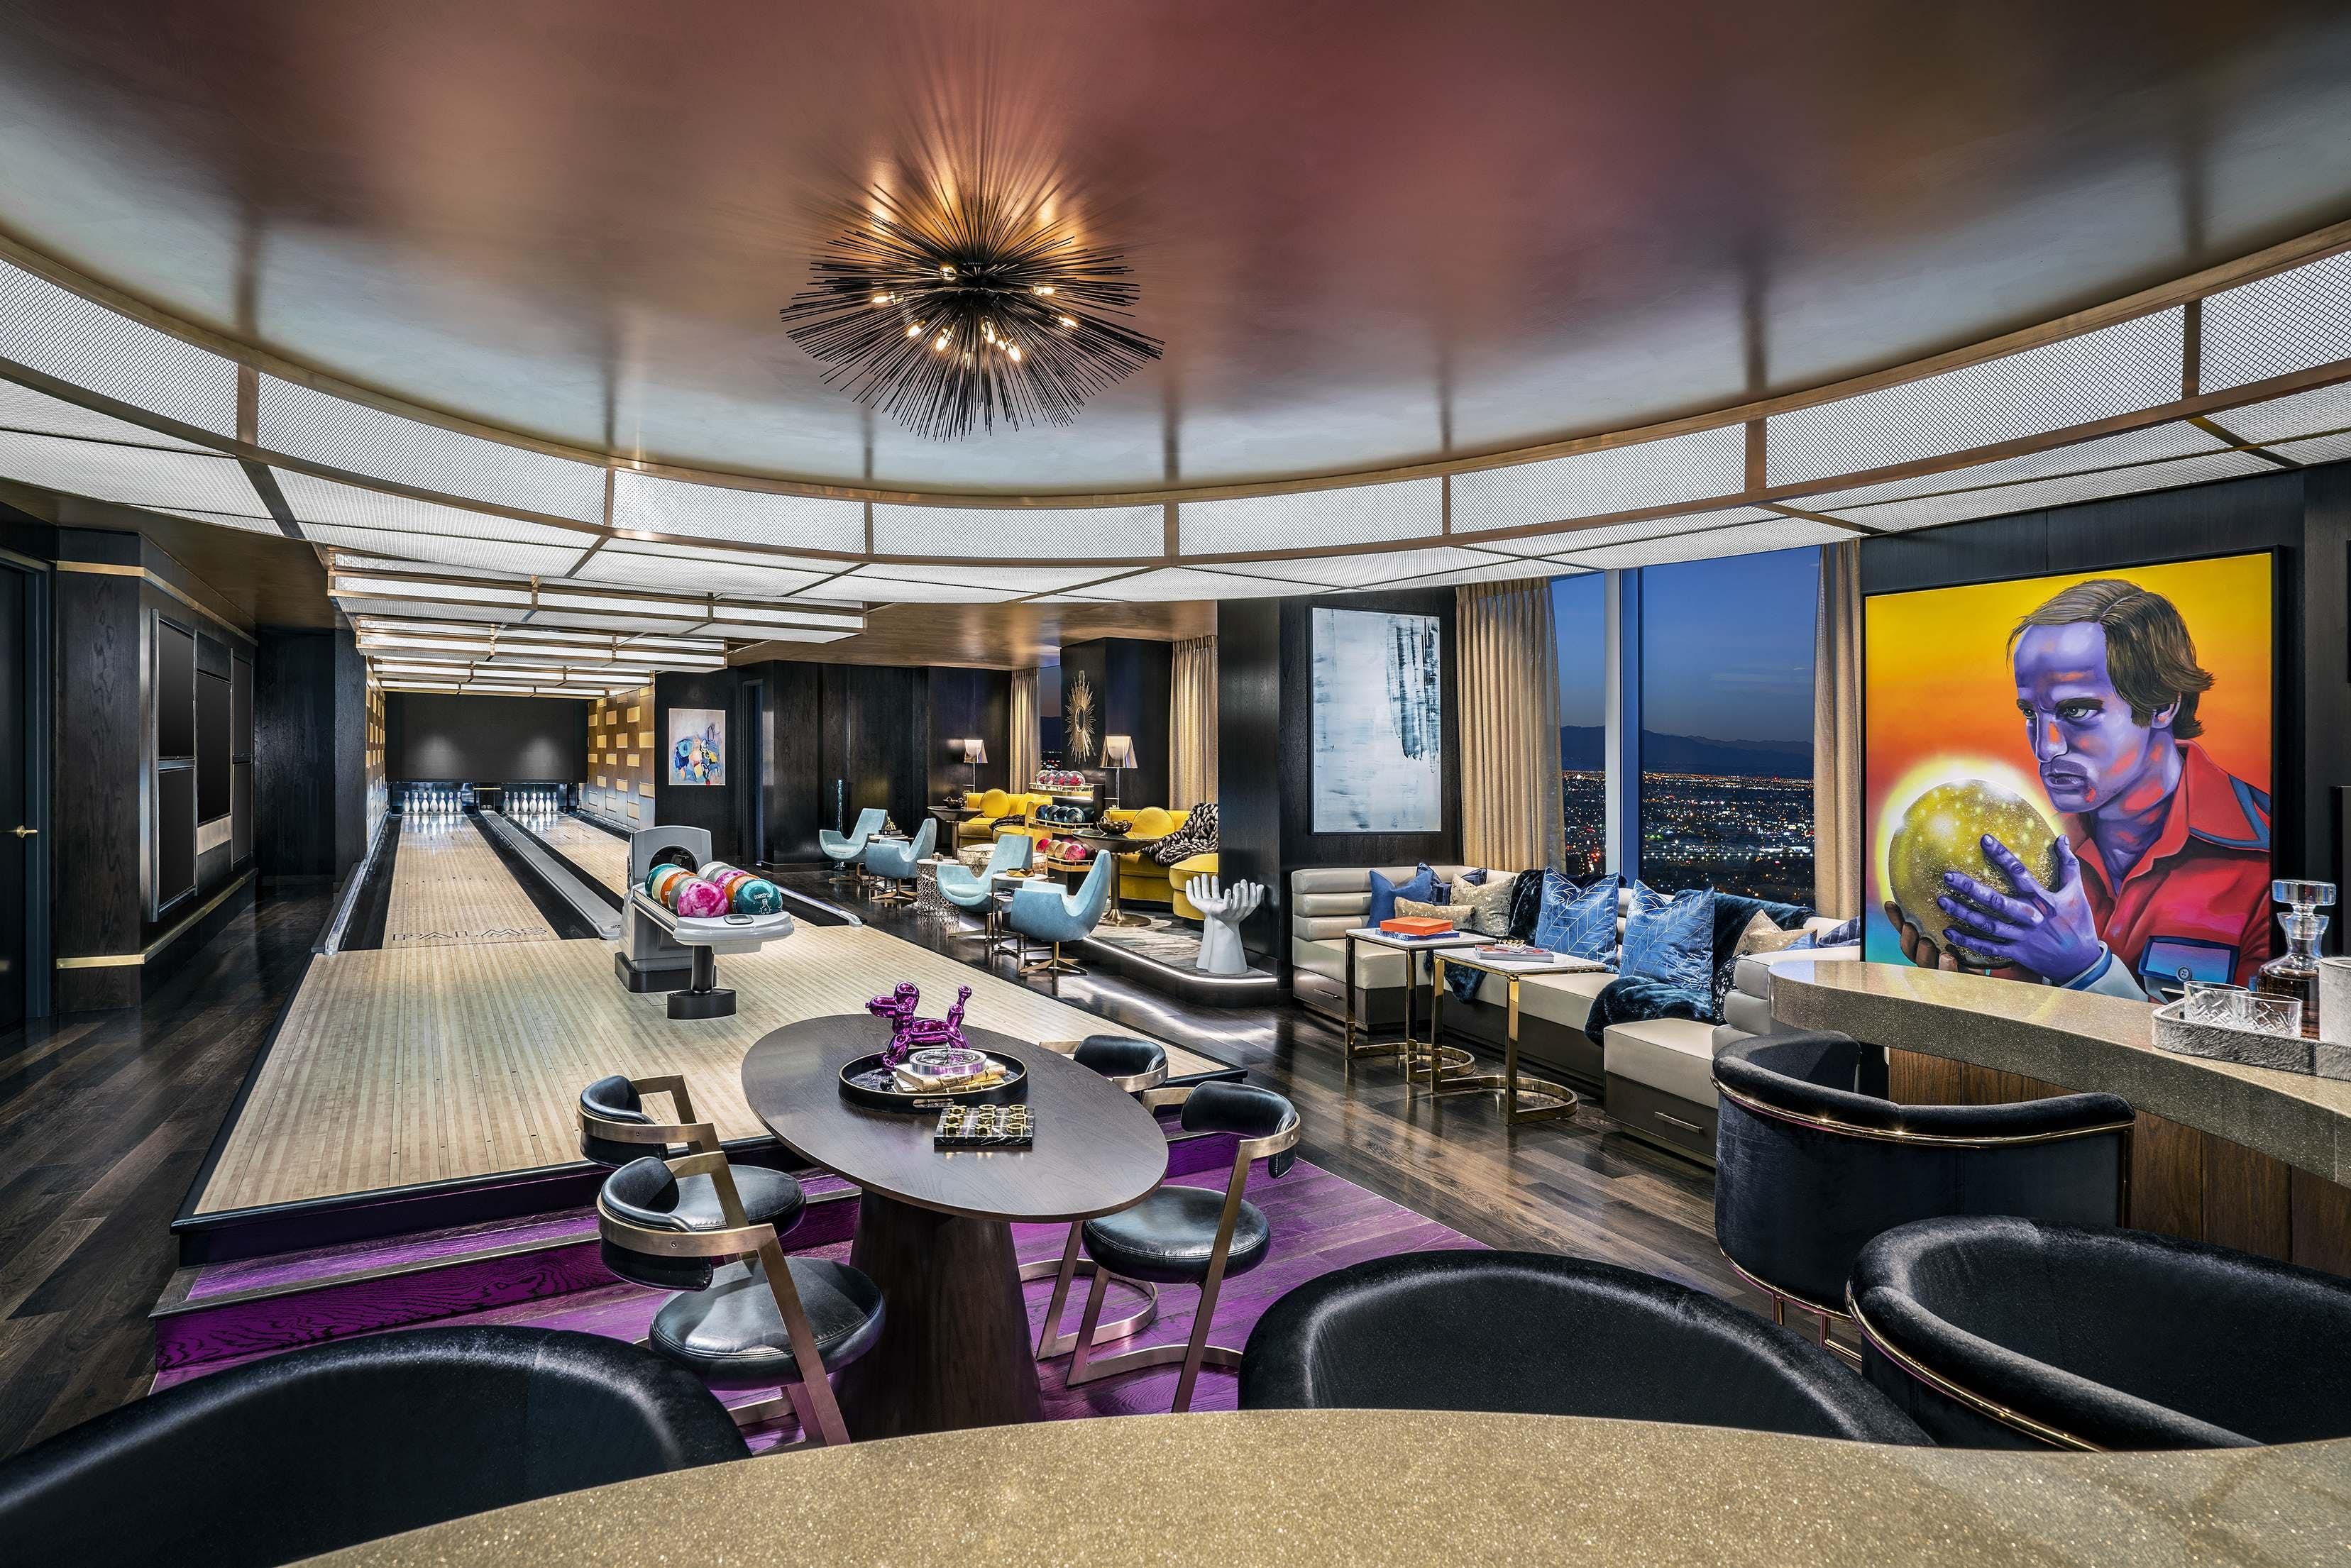 These Vegas Hotel Suites Come With Basketball Courts And Bowling Alleys Lonely Planet